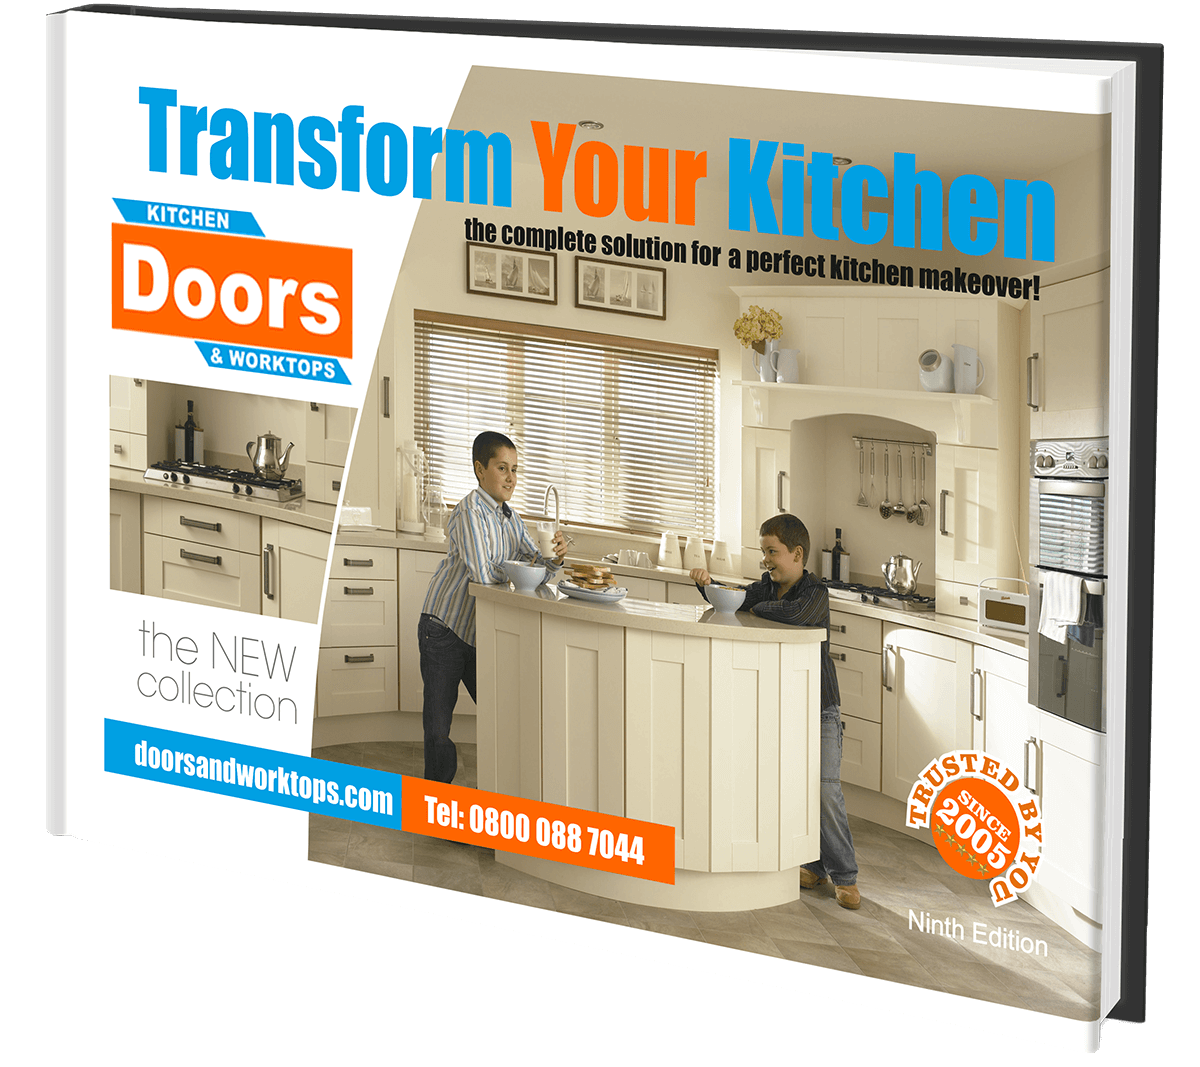 Kitchen Doors & Worktops Brochure